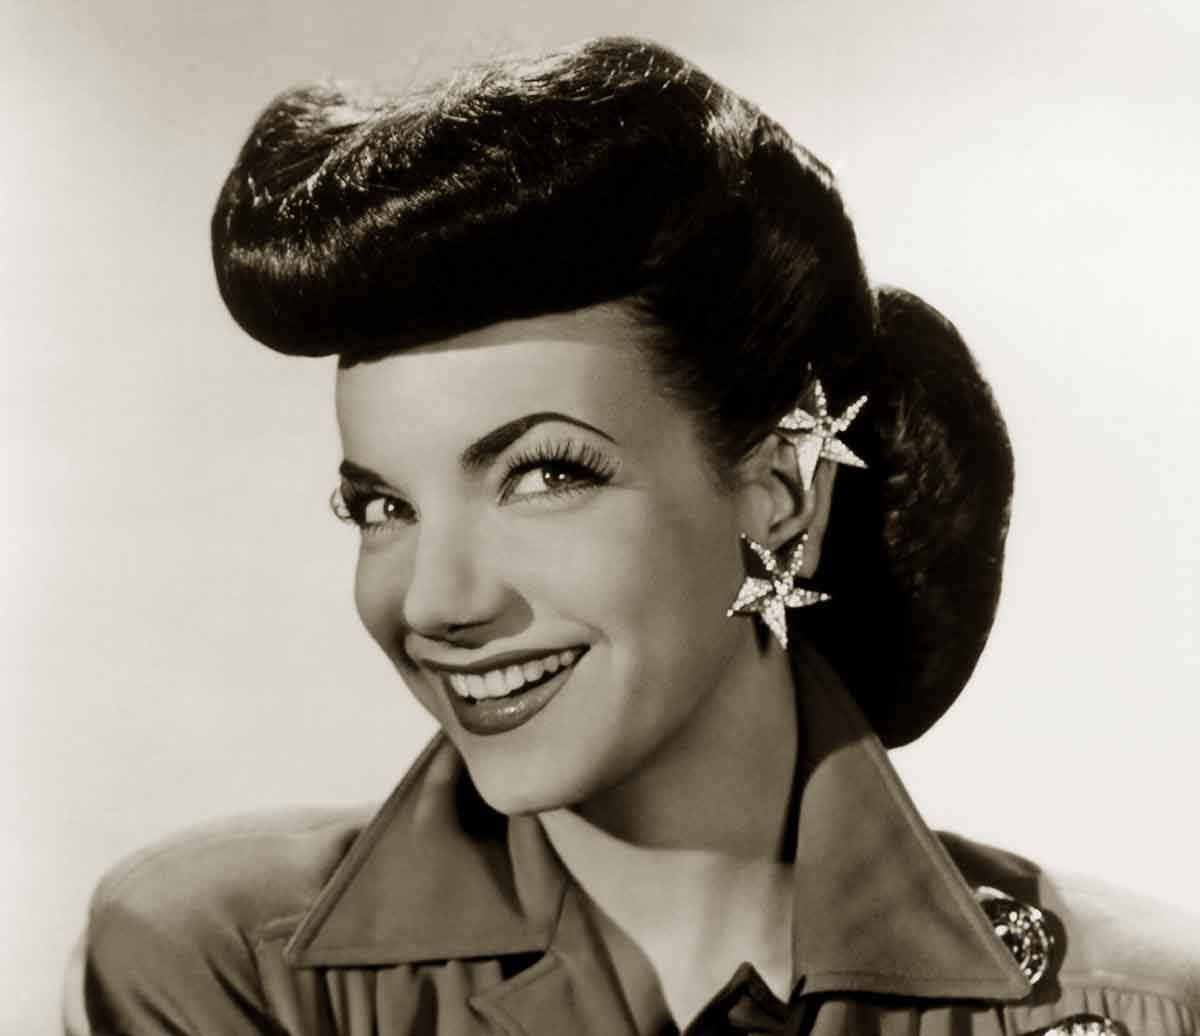 1940s hairstyles - memorable pompadours | 40's style | 1940s